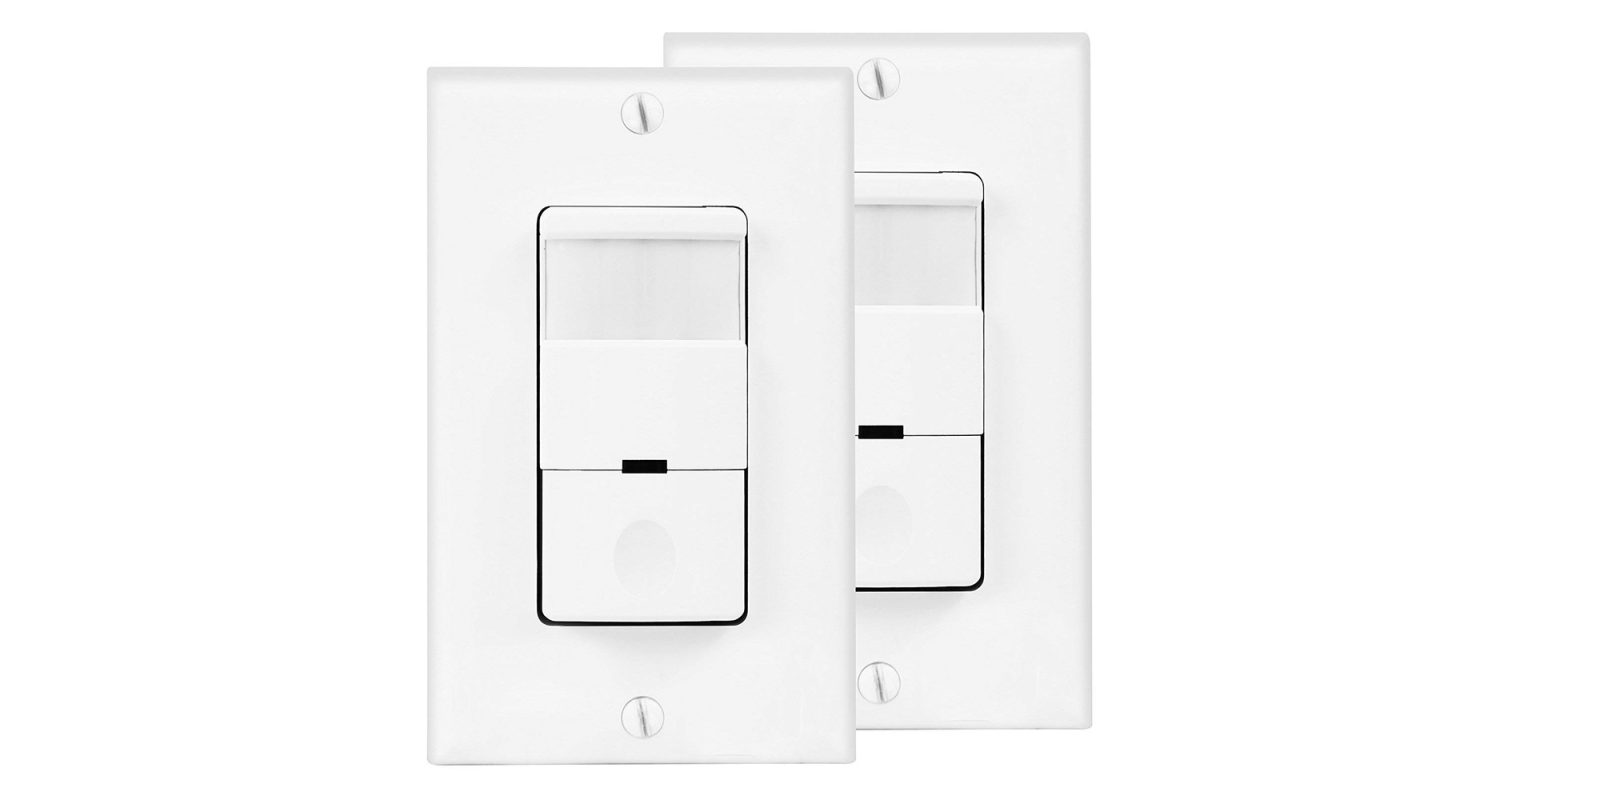 Cut down your electric bill w/ this 2-pack of motion